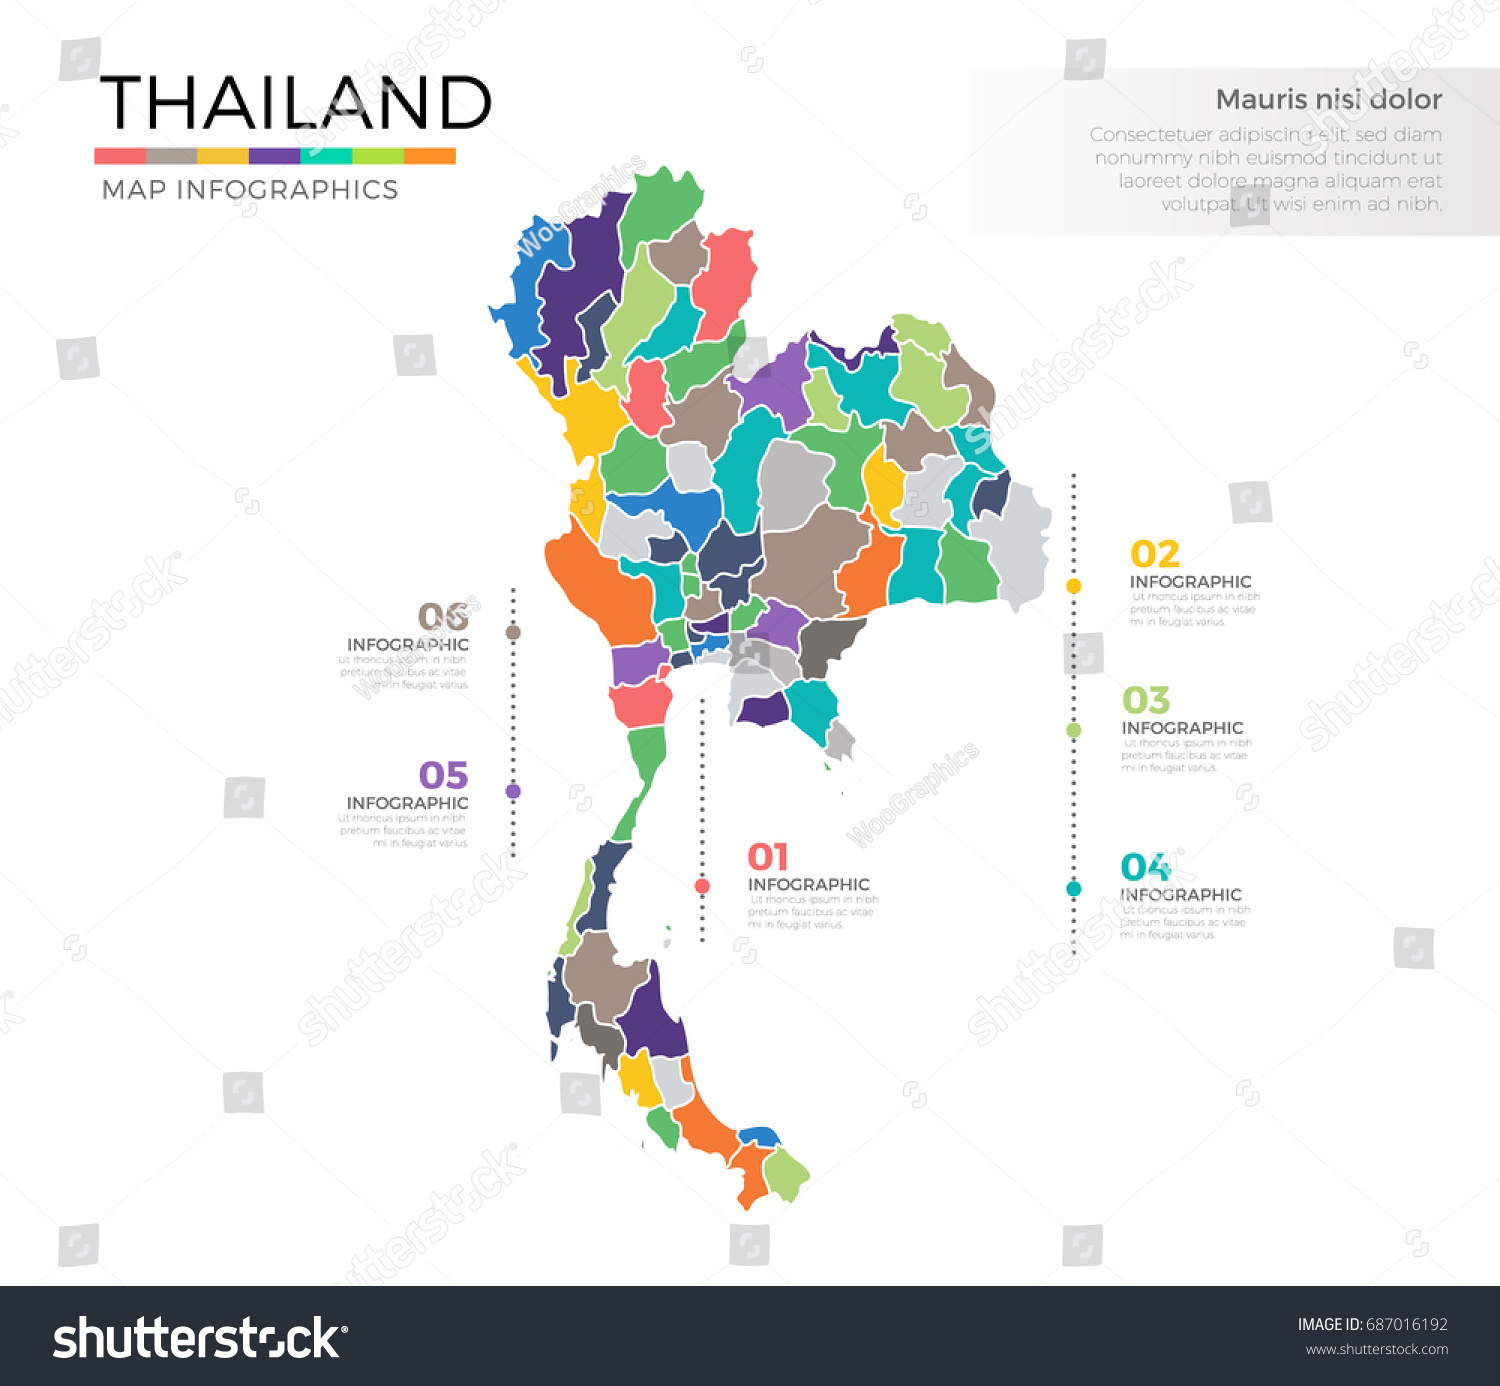 how to create a site map diagram boat battery isolator wiring thailand country infographic colored vector stock 687016192 - shutterstock